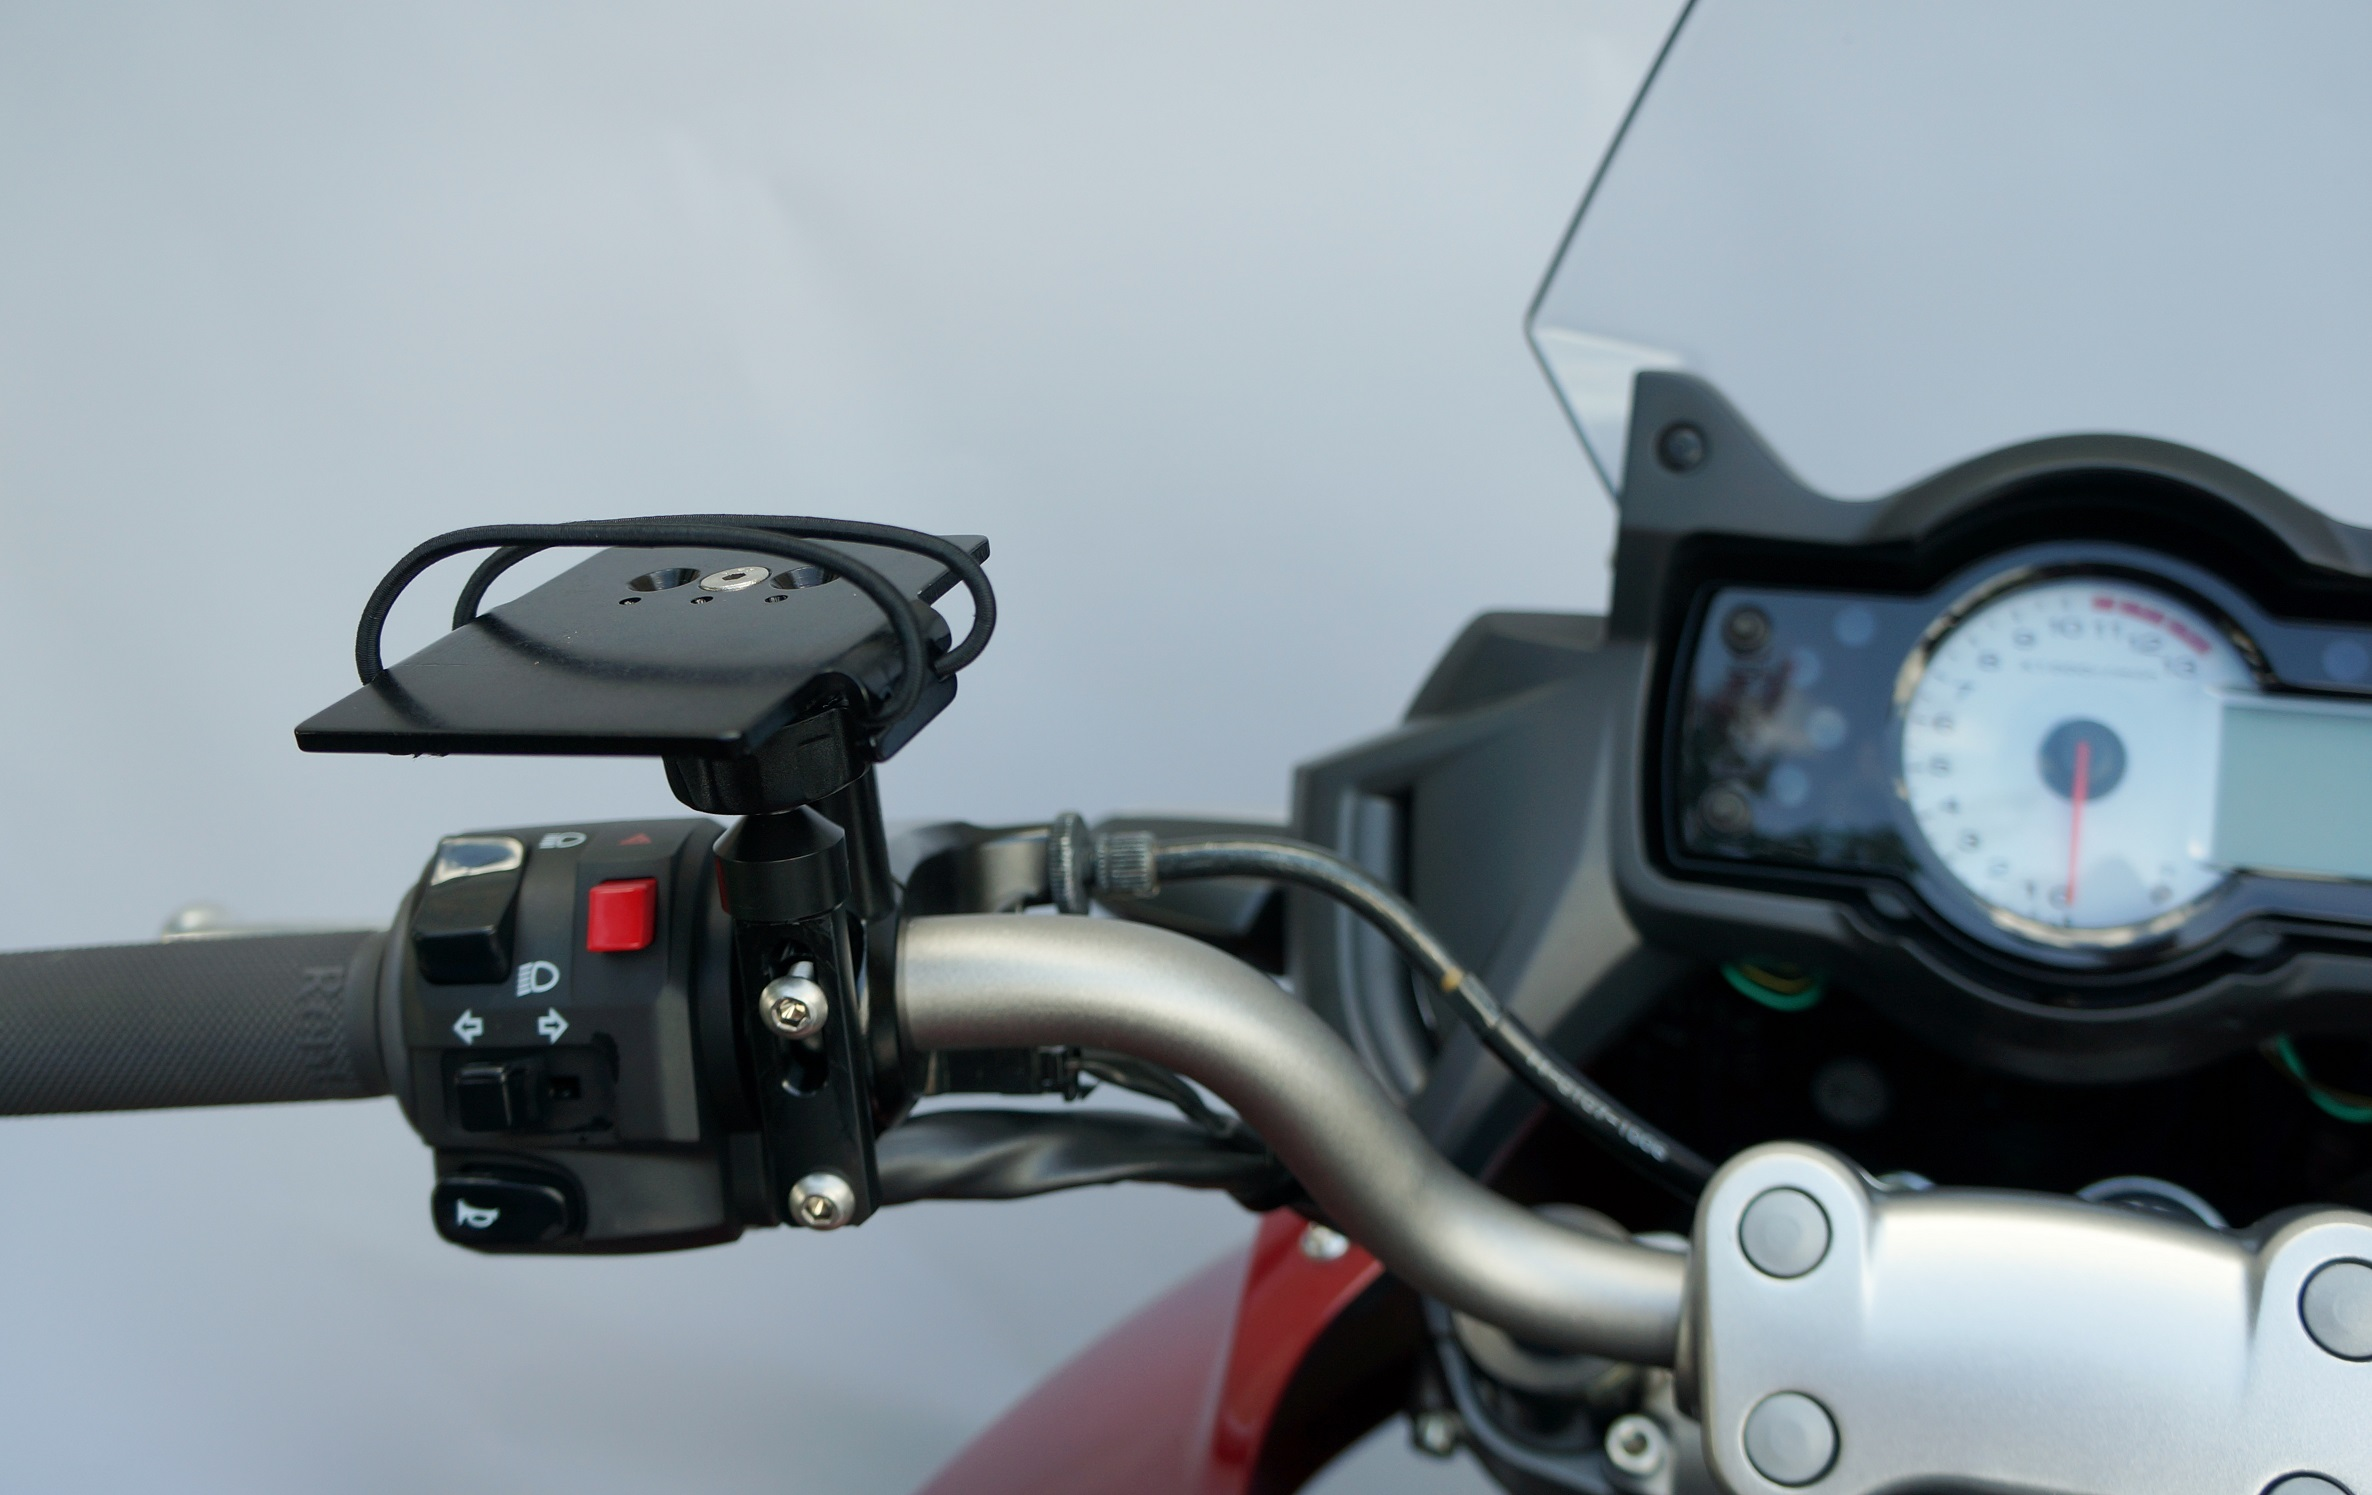 Motorcycle Radar Detector Mounting System Techmount